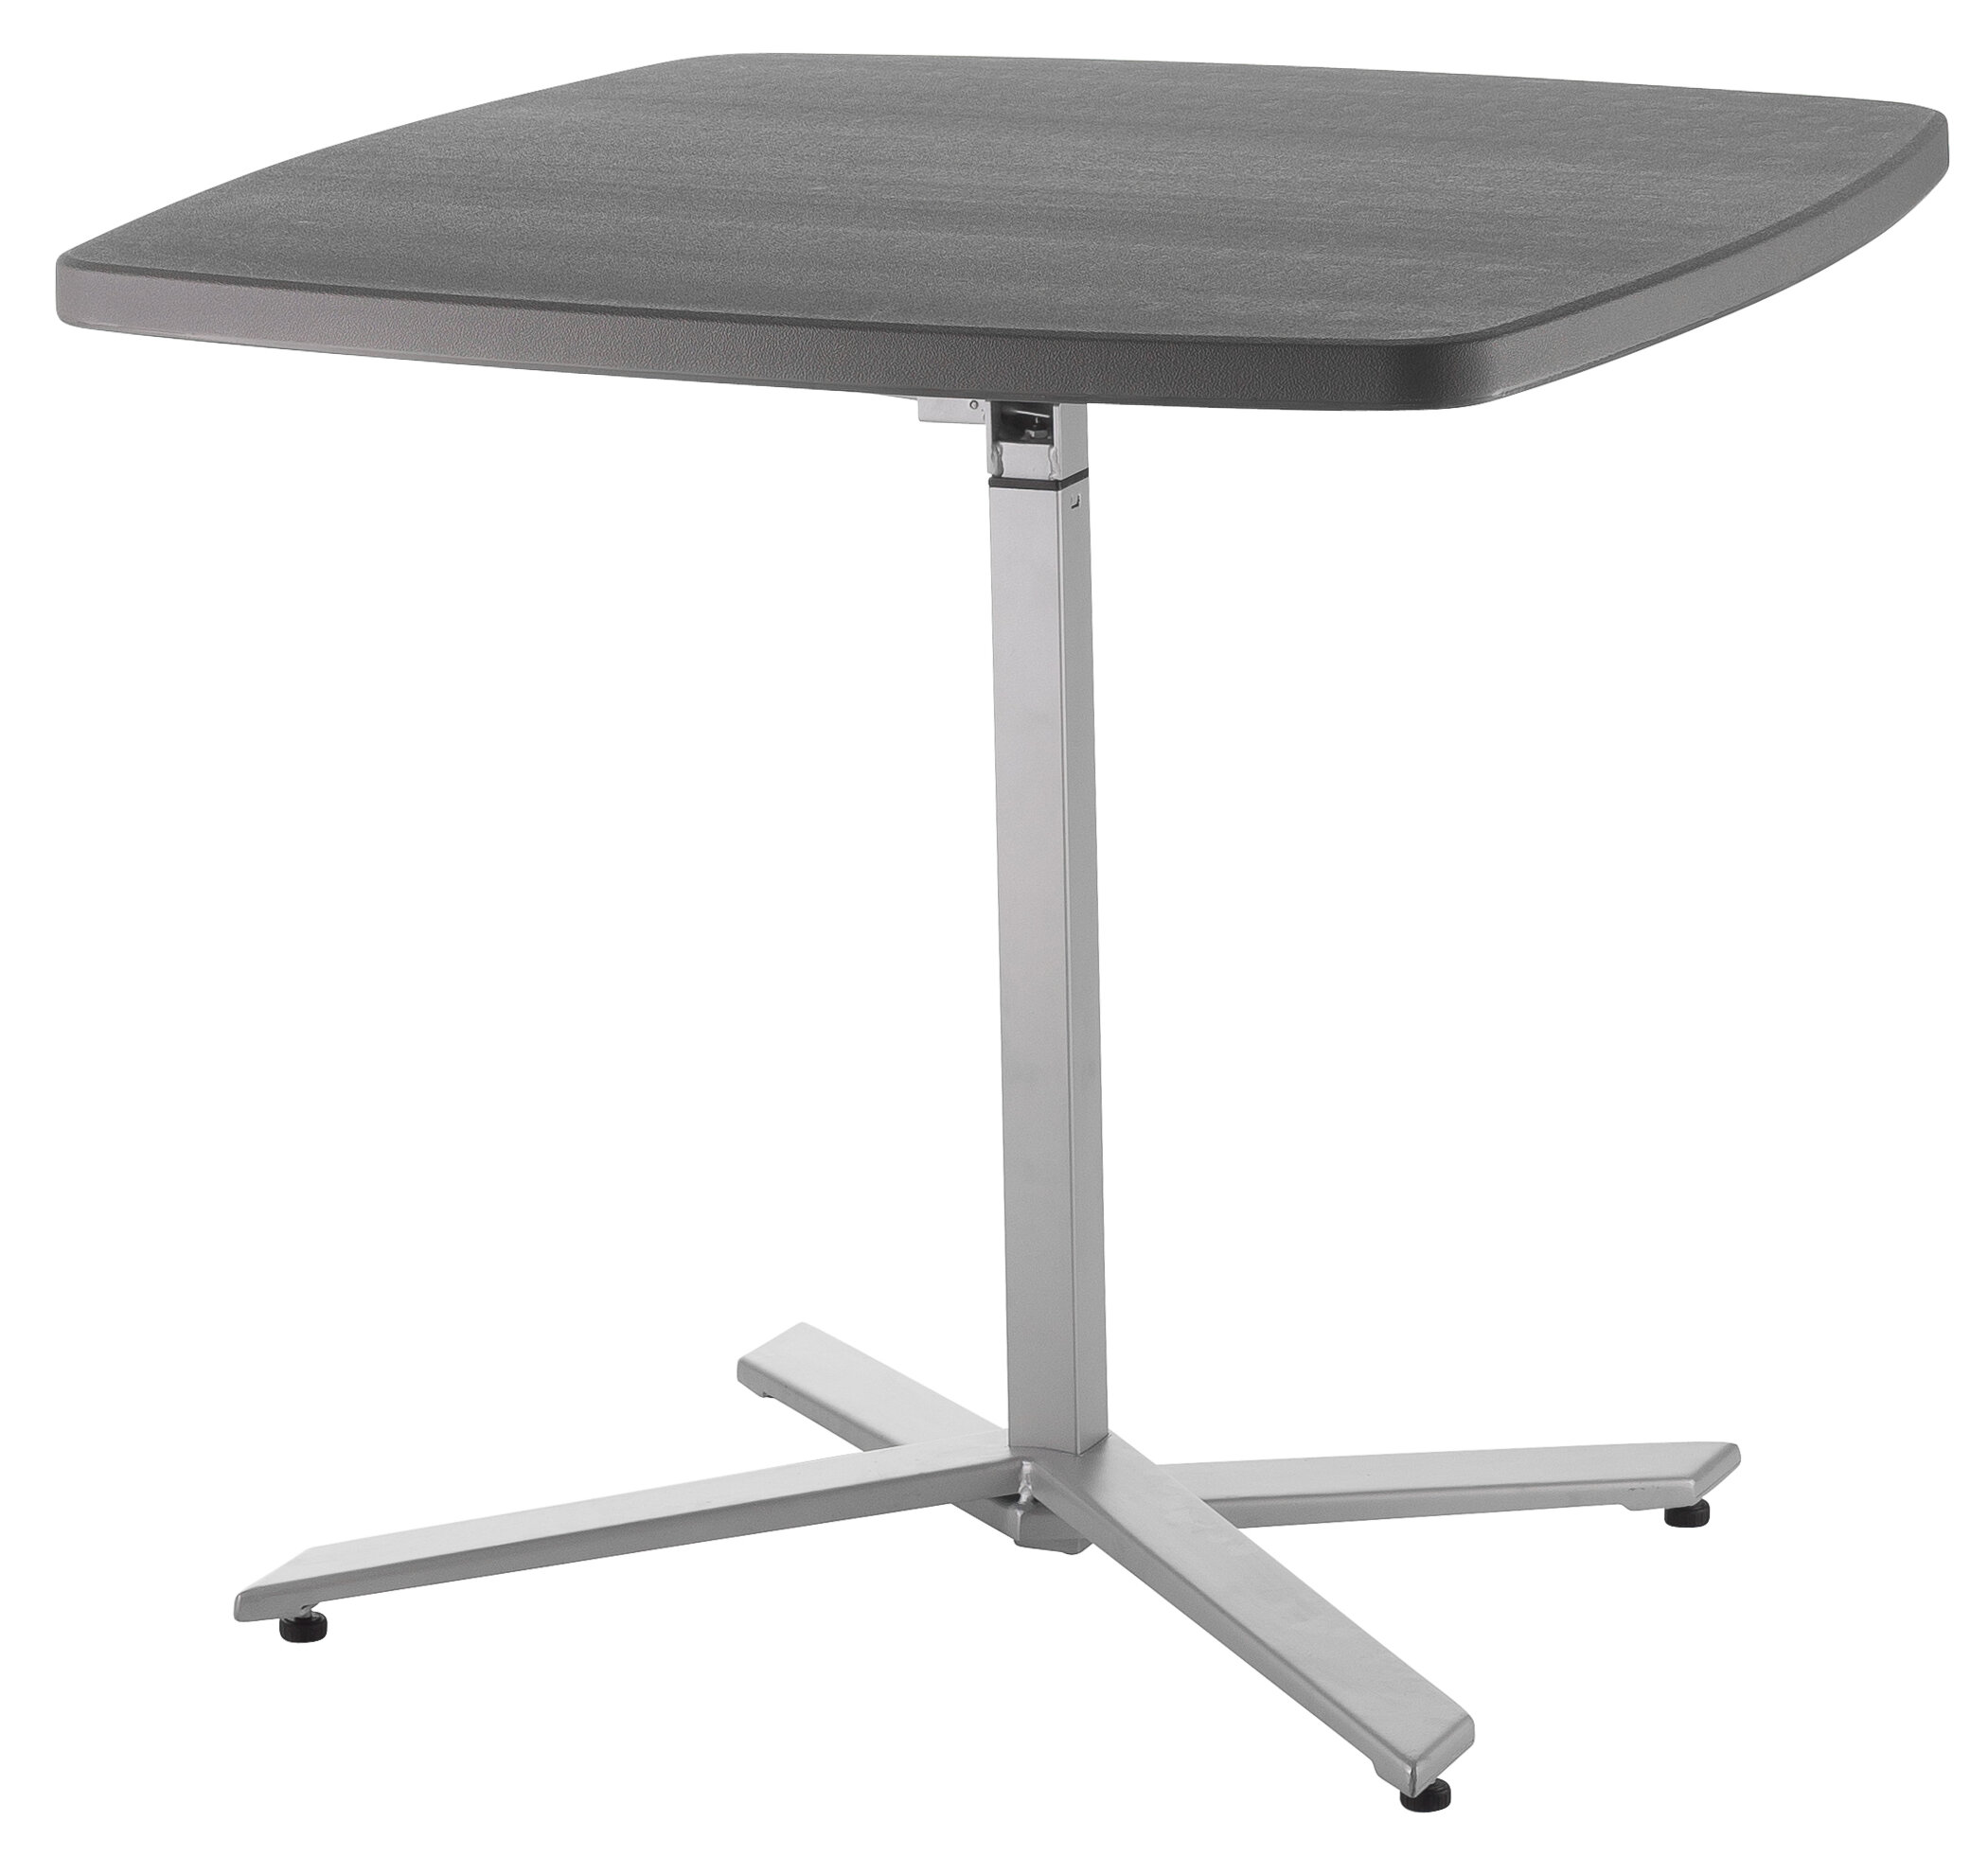 National Public Seating Adjustable Height Pub Table Reviews Wayfair - Adjustable height cafe table